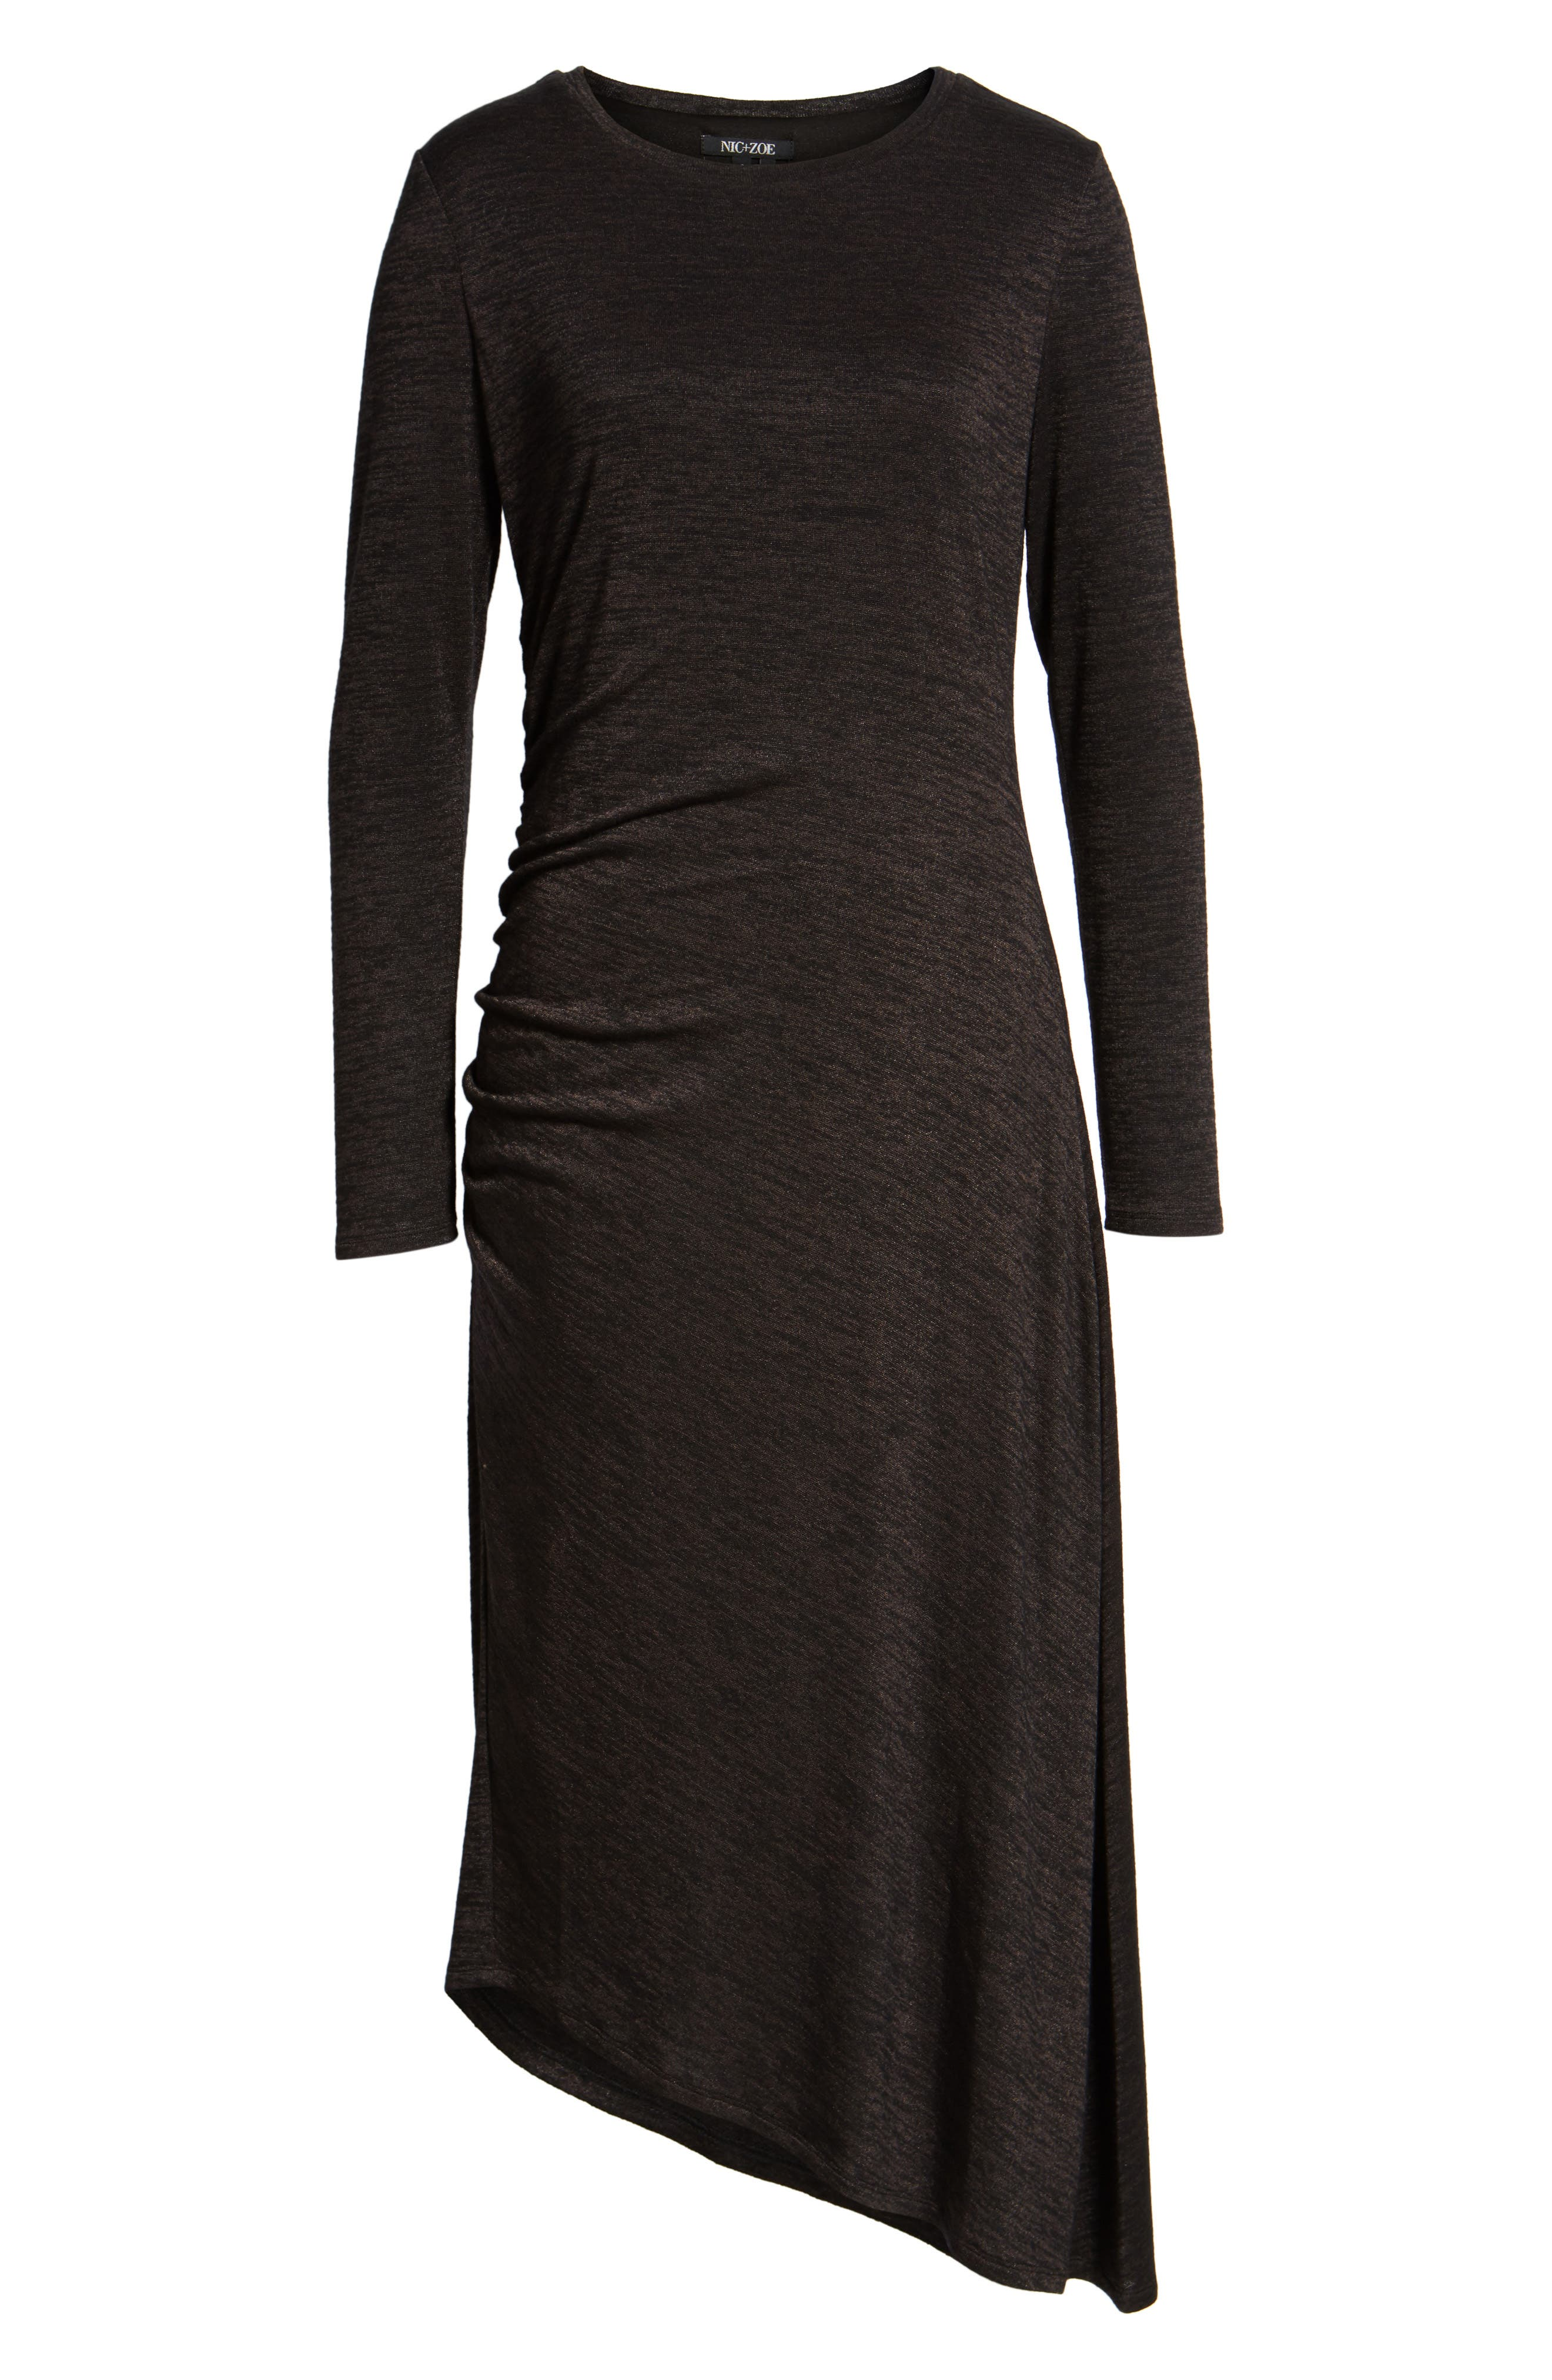 Firelight Midi Dress,                             Alternate thumbnail 6, color,